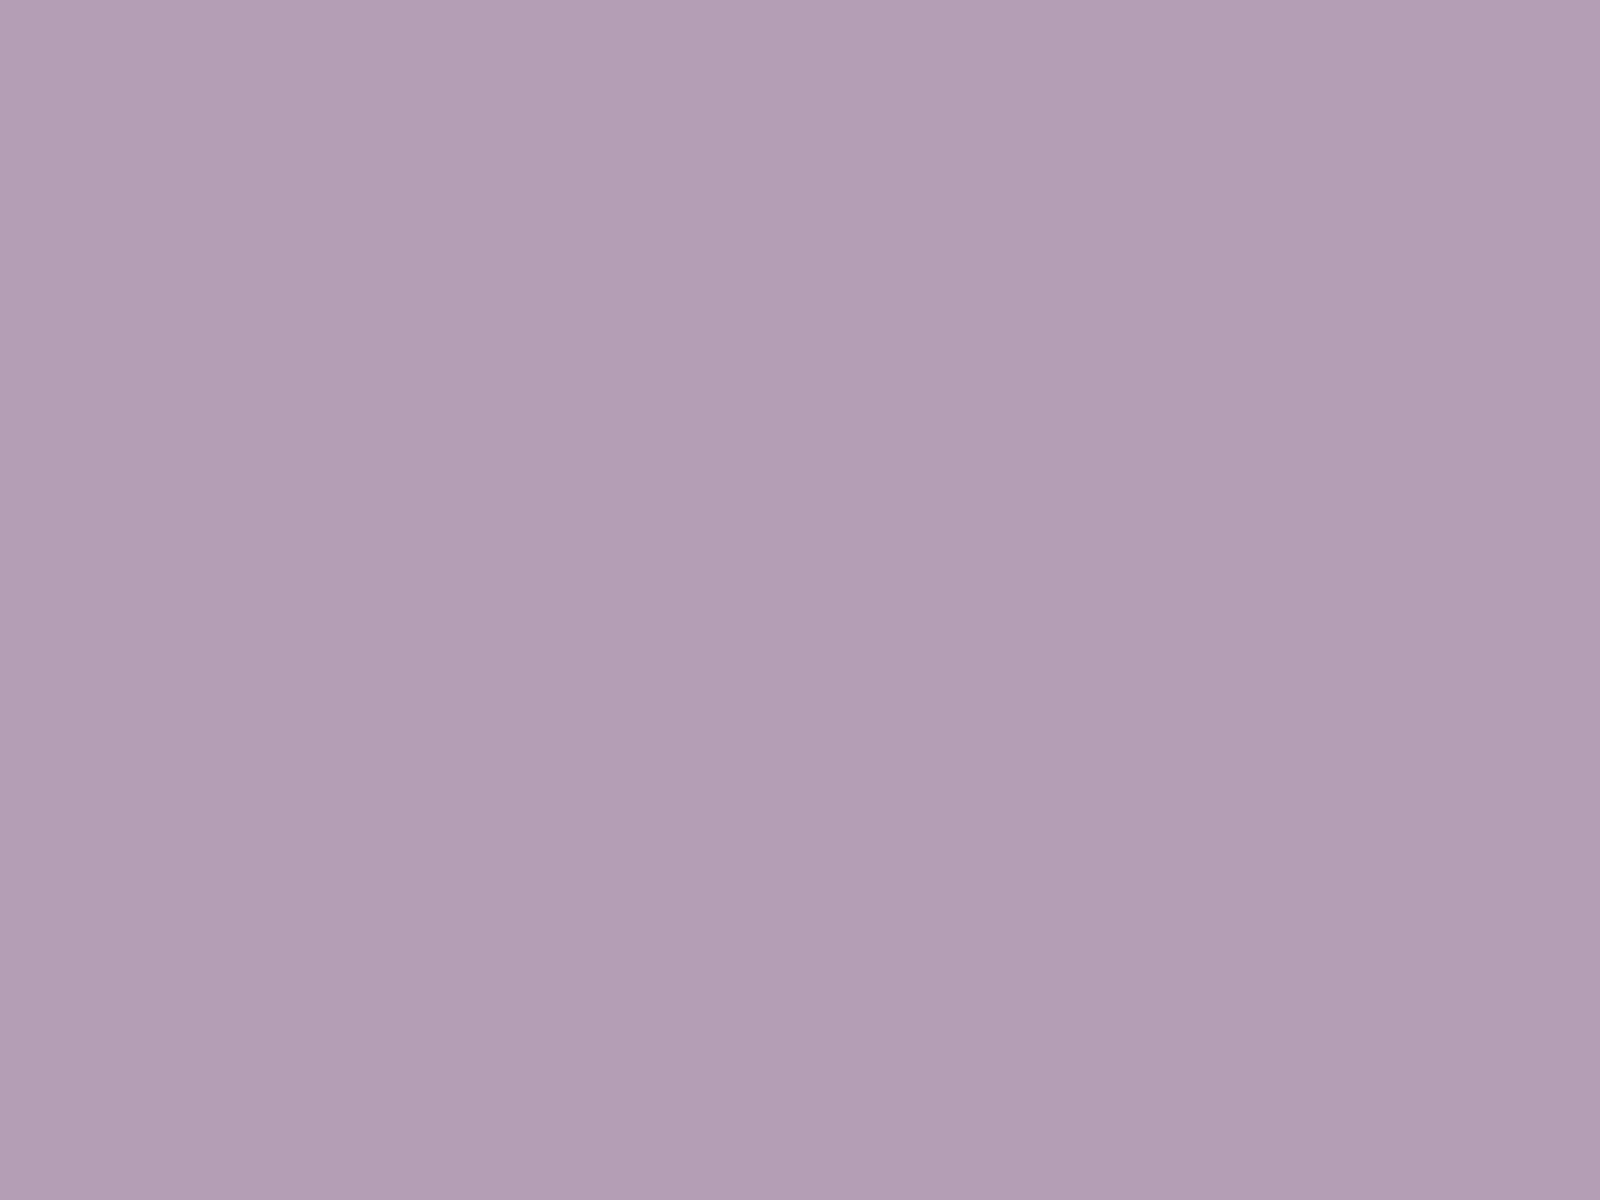 1600x1200 Pastel Purple Solid Color Background